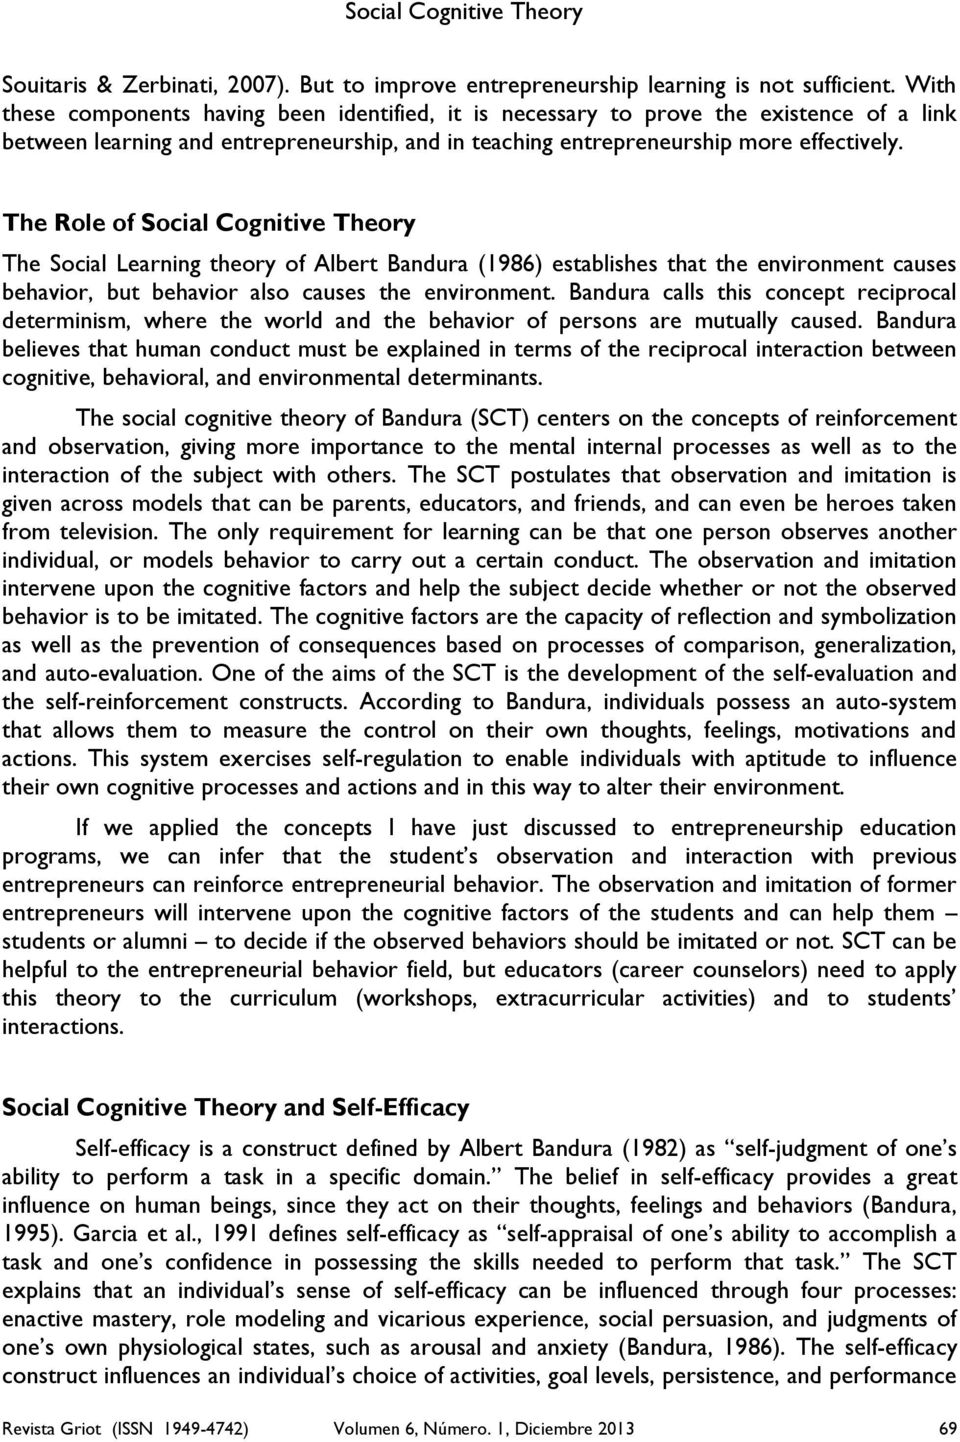 The Role of Social Cognitive Theory The Social Learning theory of Albert Bandura (1986) establishes that the environment causes behavior, but behavior also causes the environment.